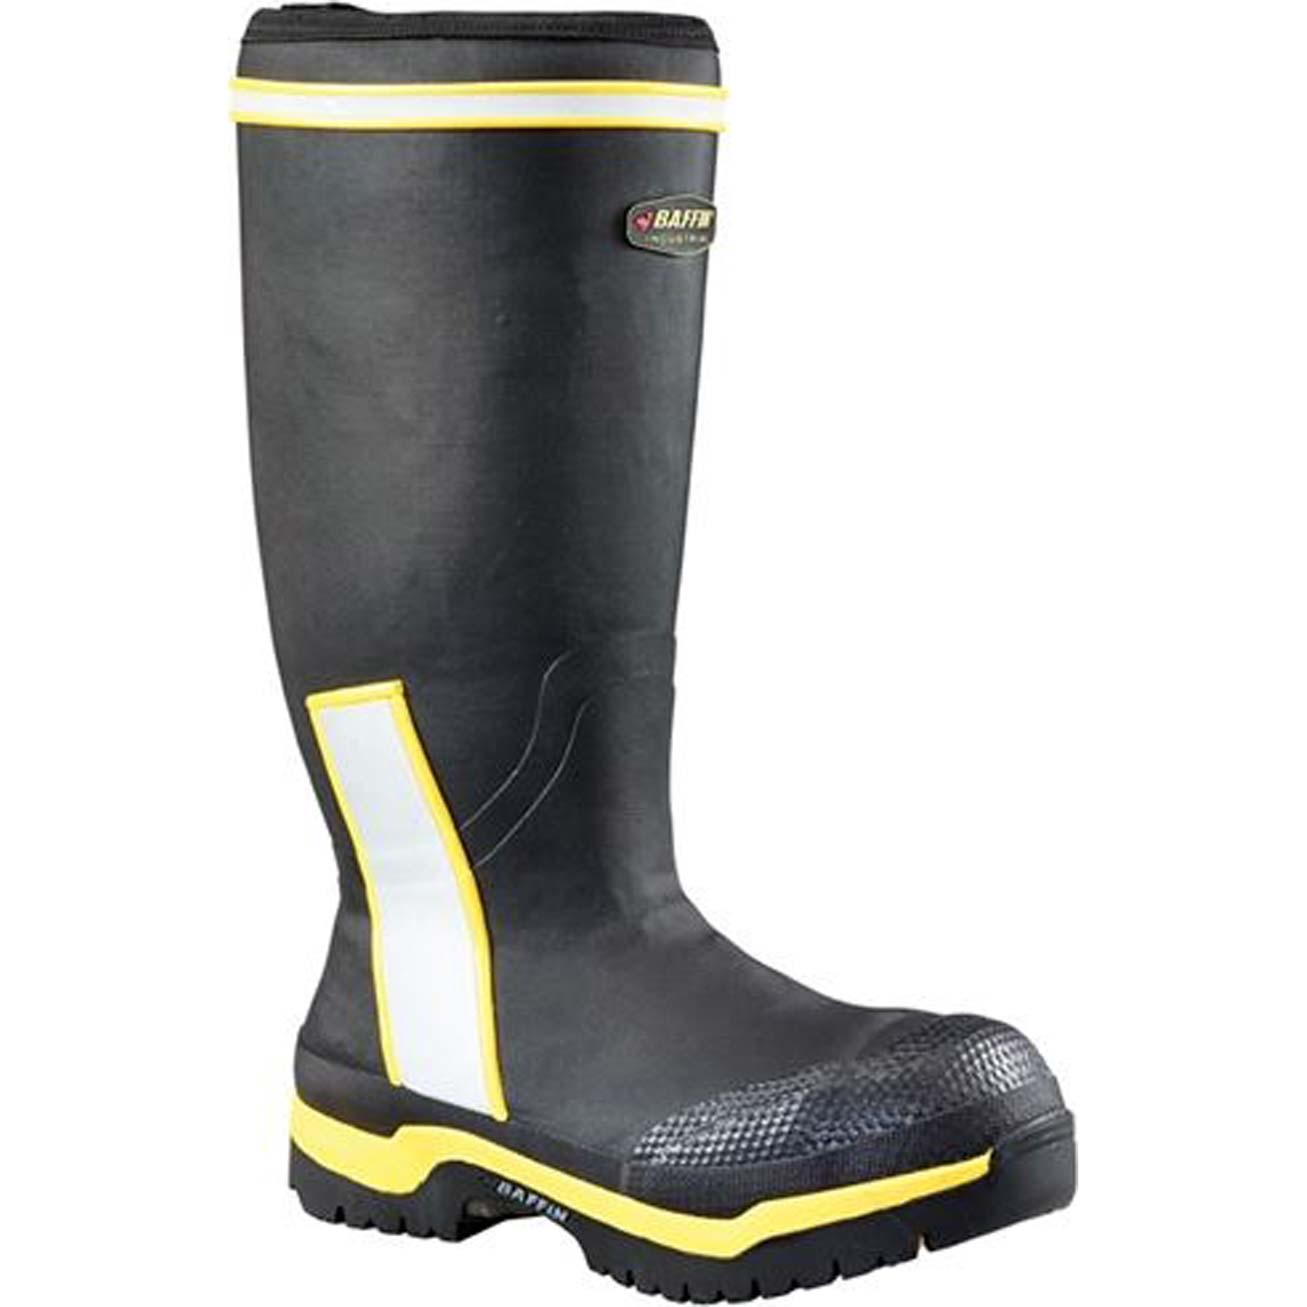 Baffin Cyclone Steel Toe Csa Approved Puncture Resistant